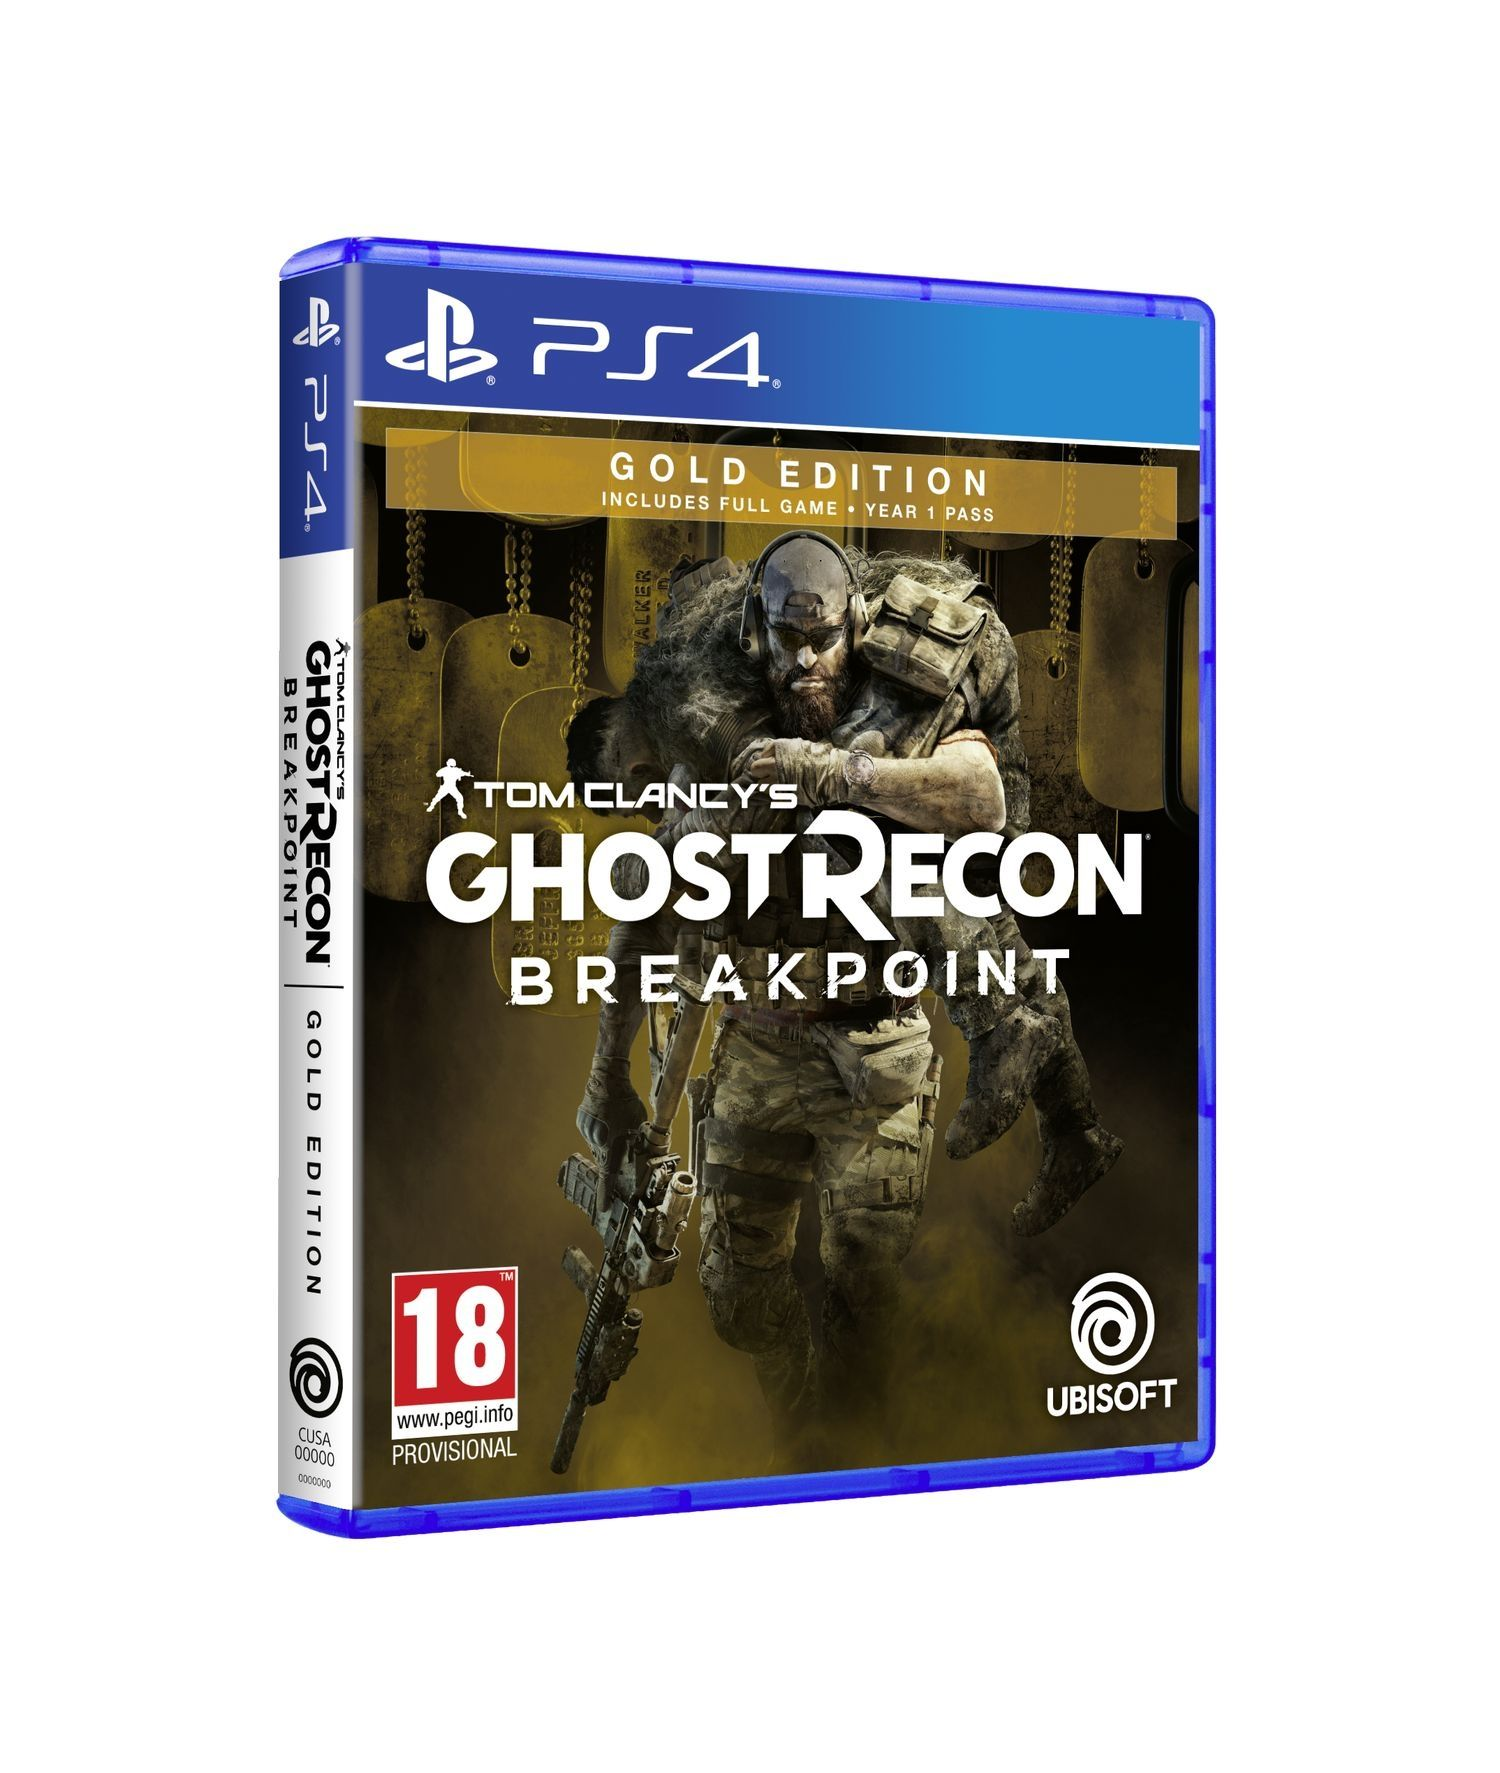 Tom Clancy's Ghost Recon Breakpoint - Gold Edition (PS4) - 3